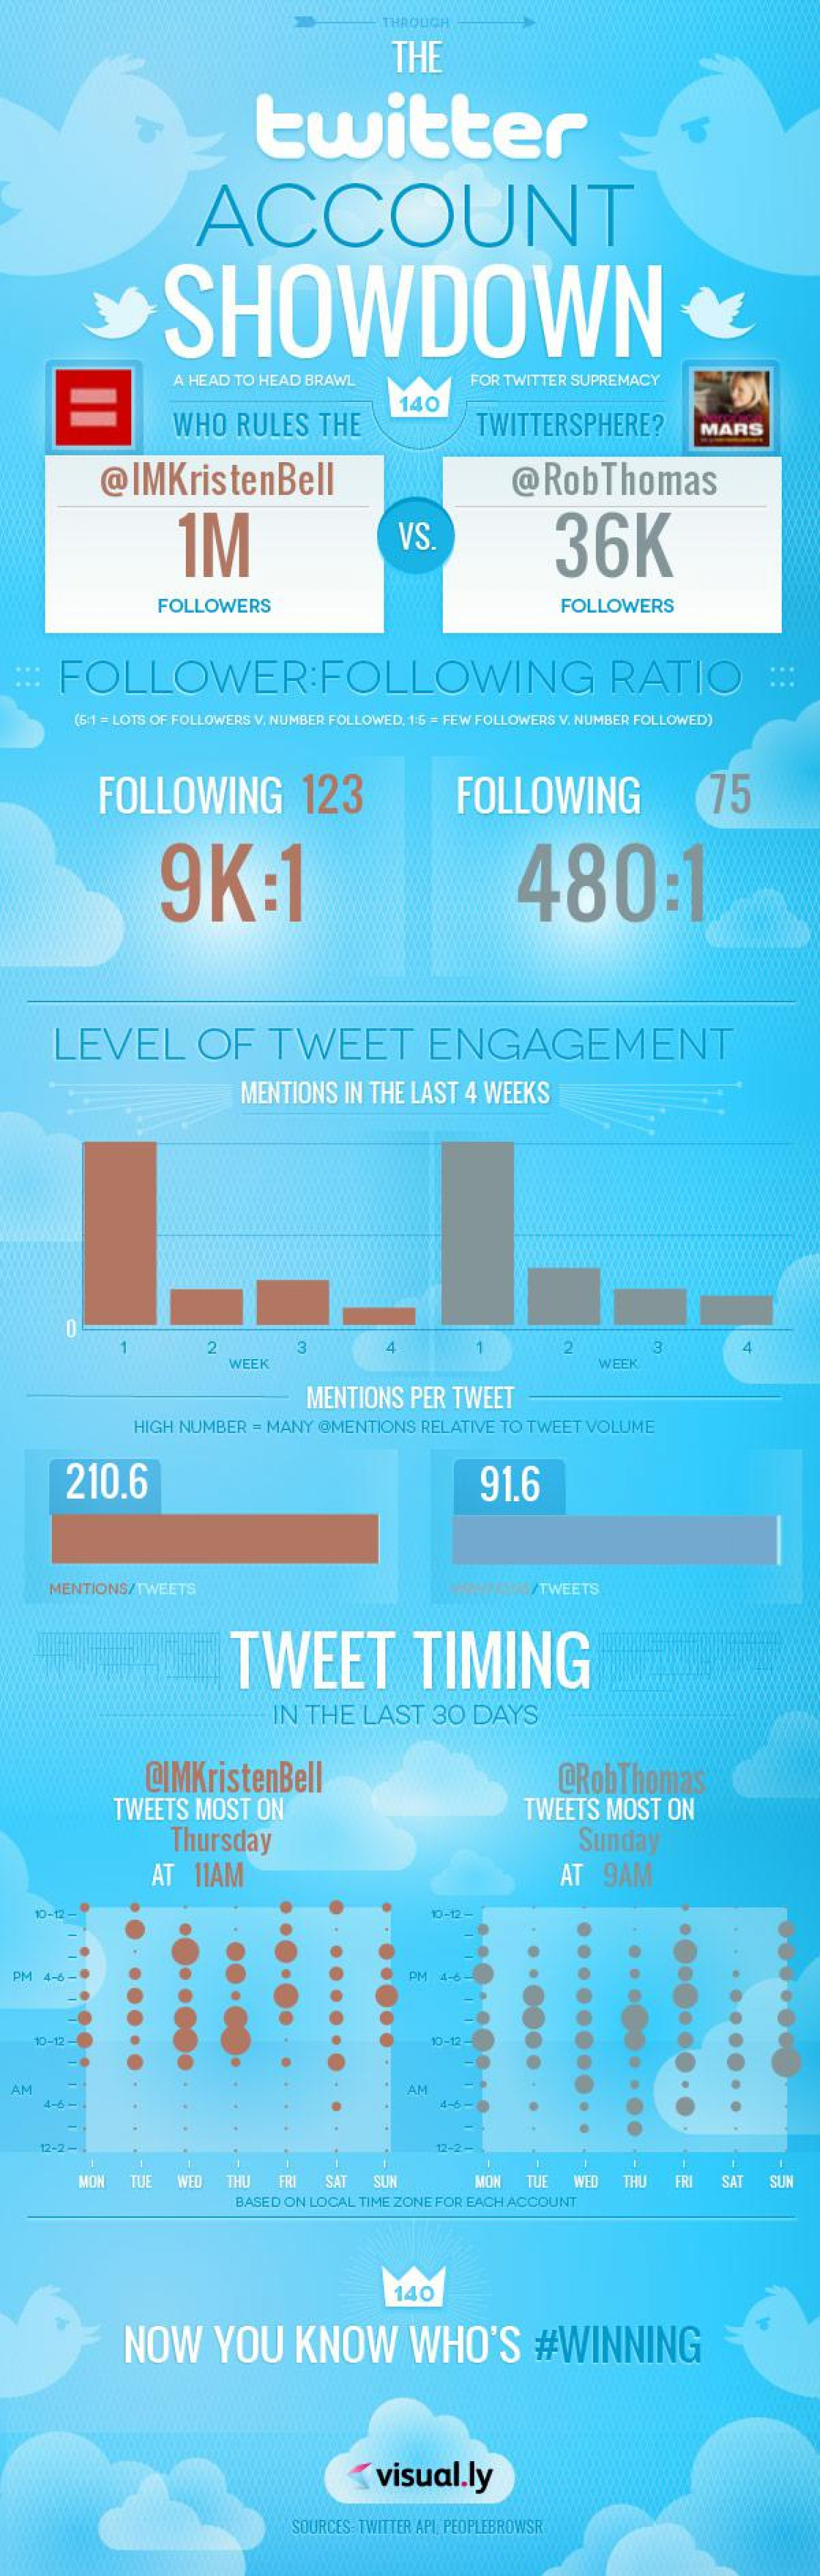 @IMKristenBell vs @RobThomas Twitter Activity Infographic